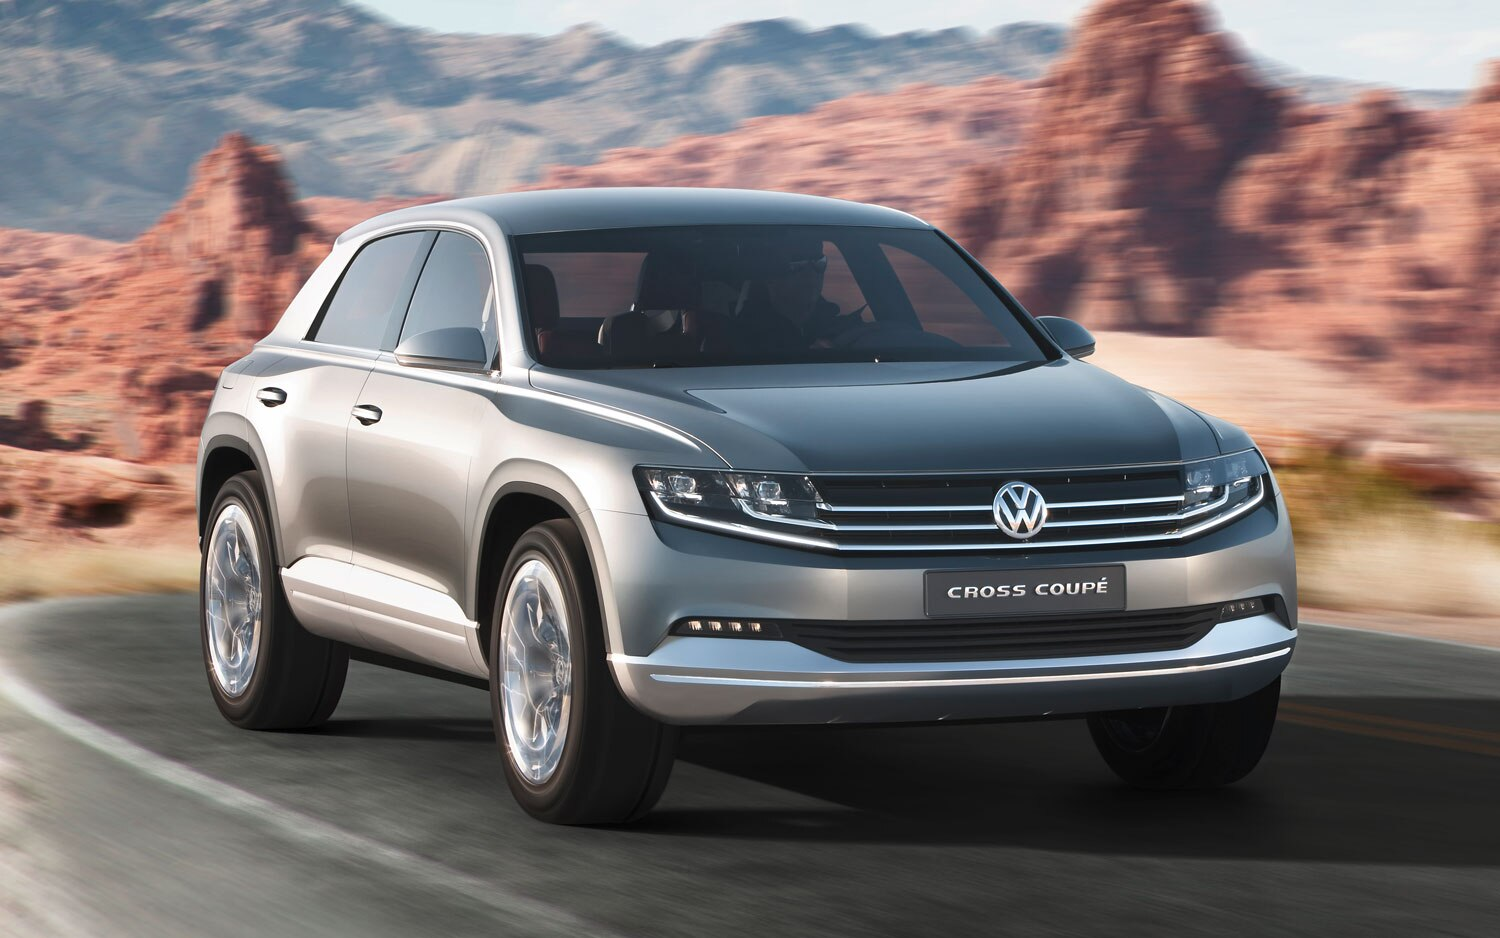 Volkswagen Cross Coupe Concept Front Left Angle1